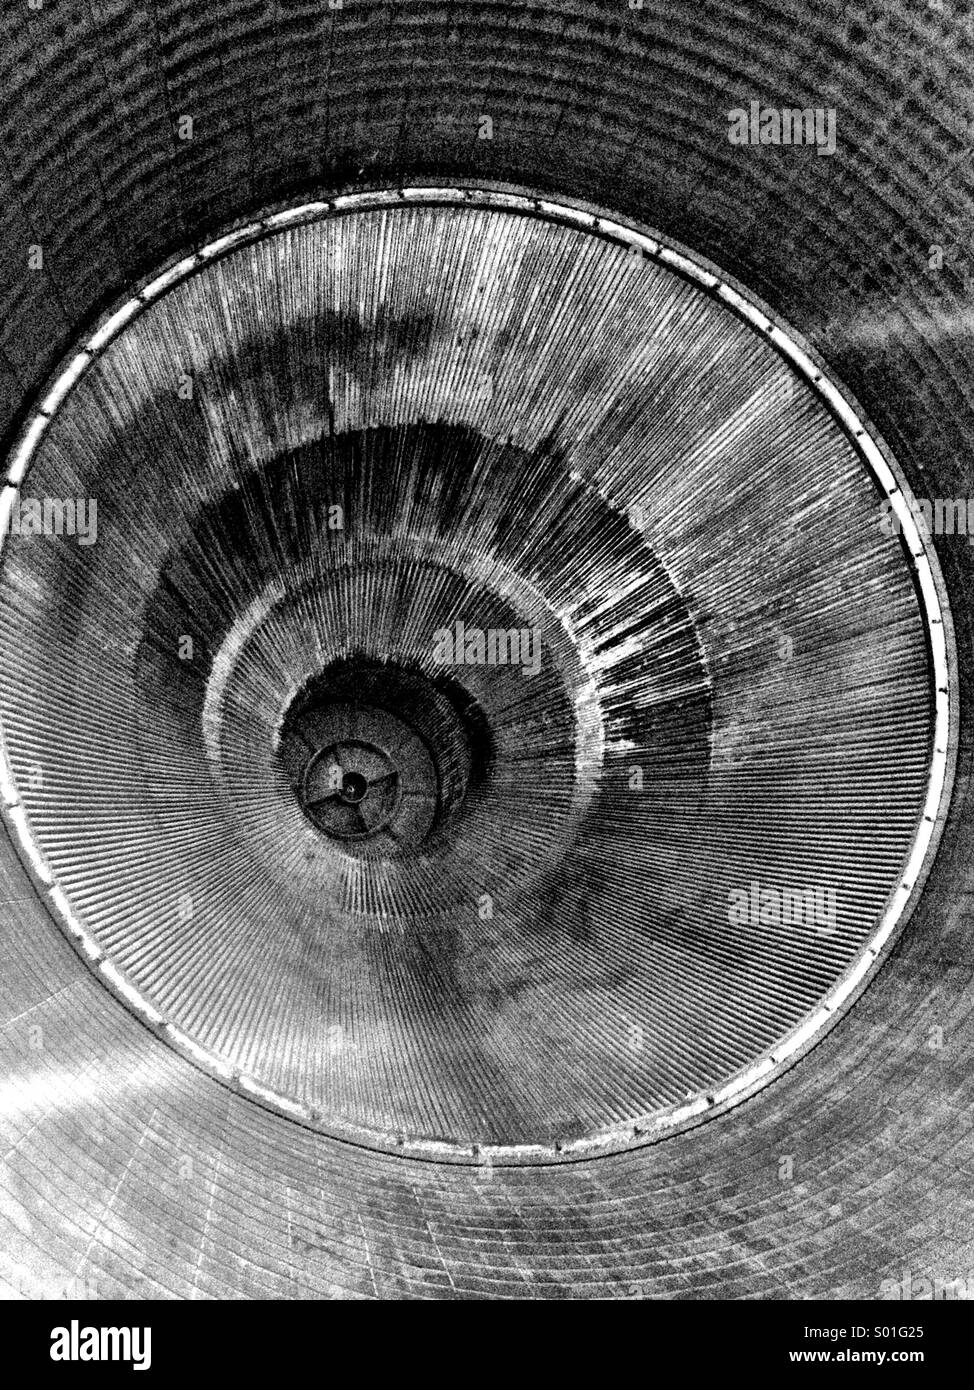 The interior of the nozzle of a Rocketdyne F-1 engine as seen on a Saturn V moon rocket. - Stock Image